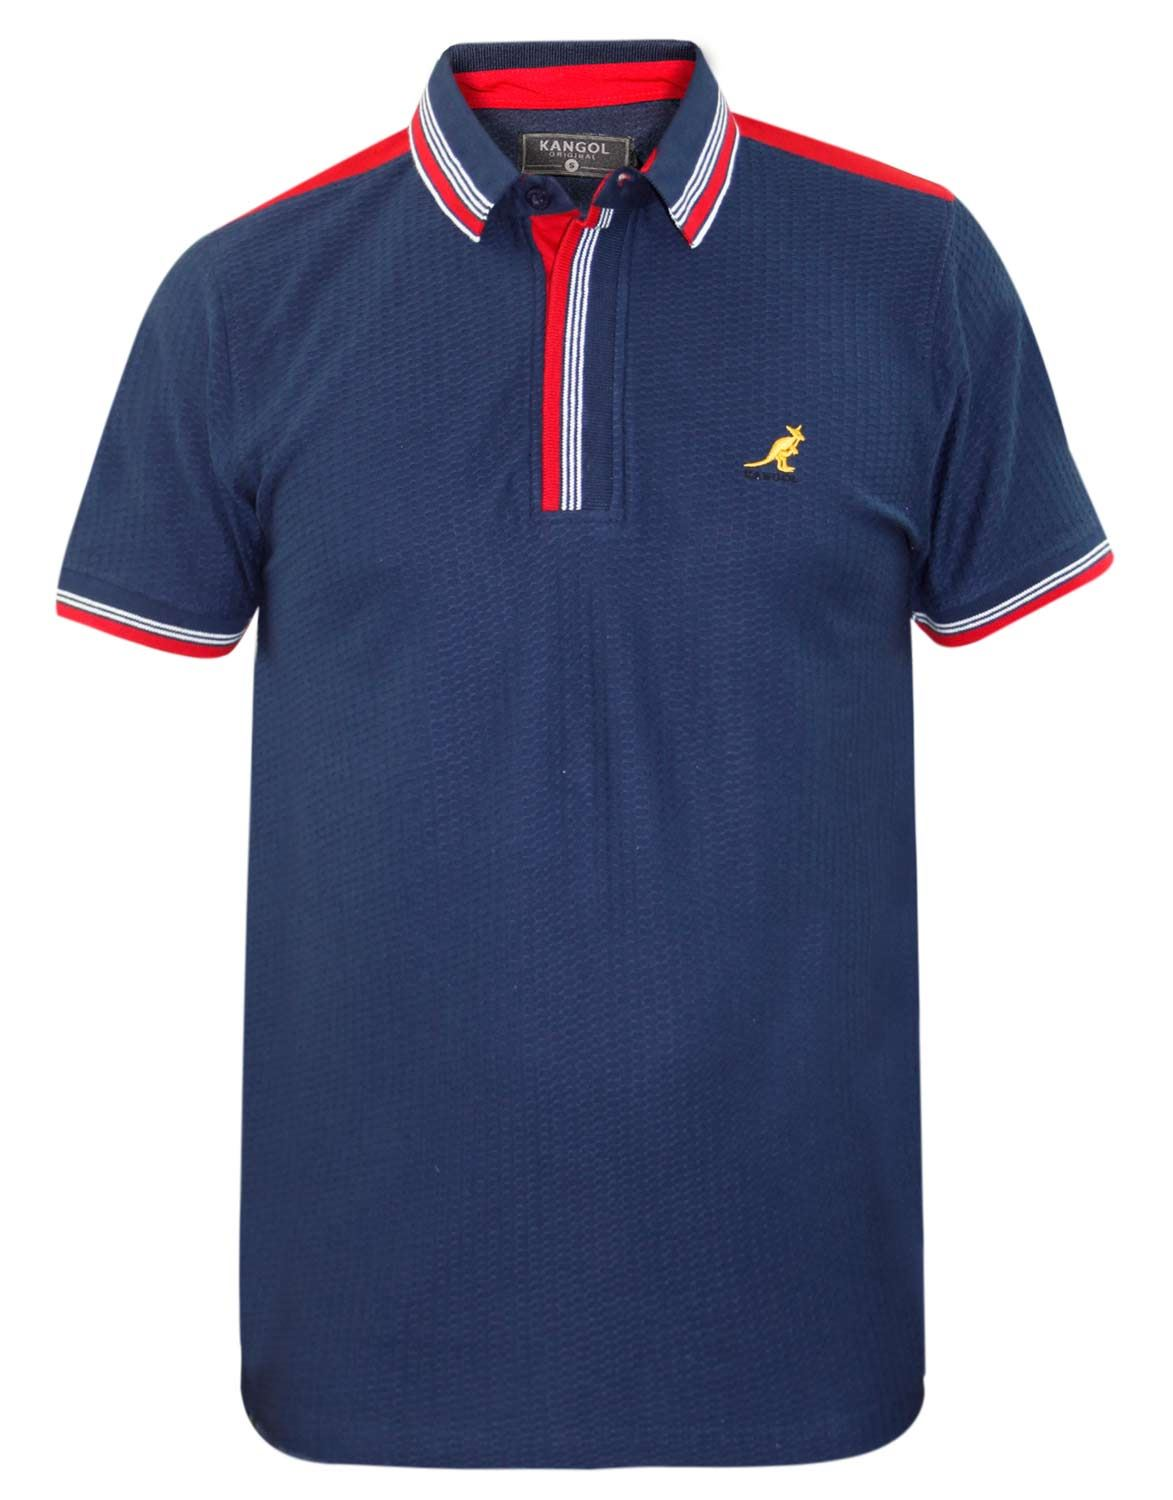 New mens kangol brand polo t shirt contrasted designer top for Top designer t shirt brands